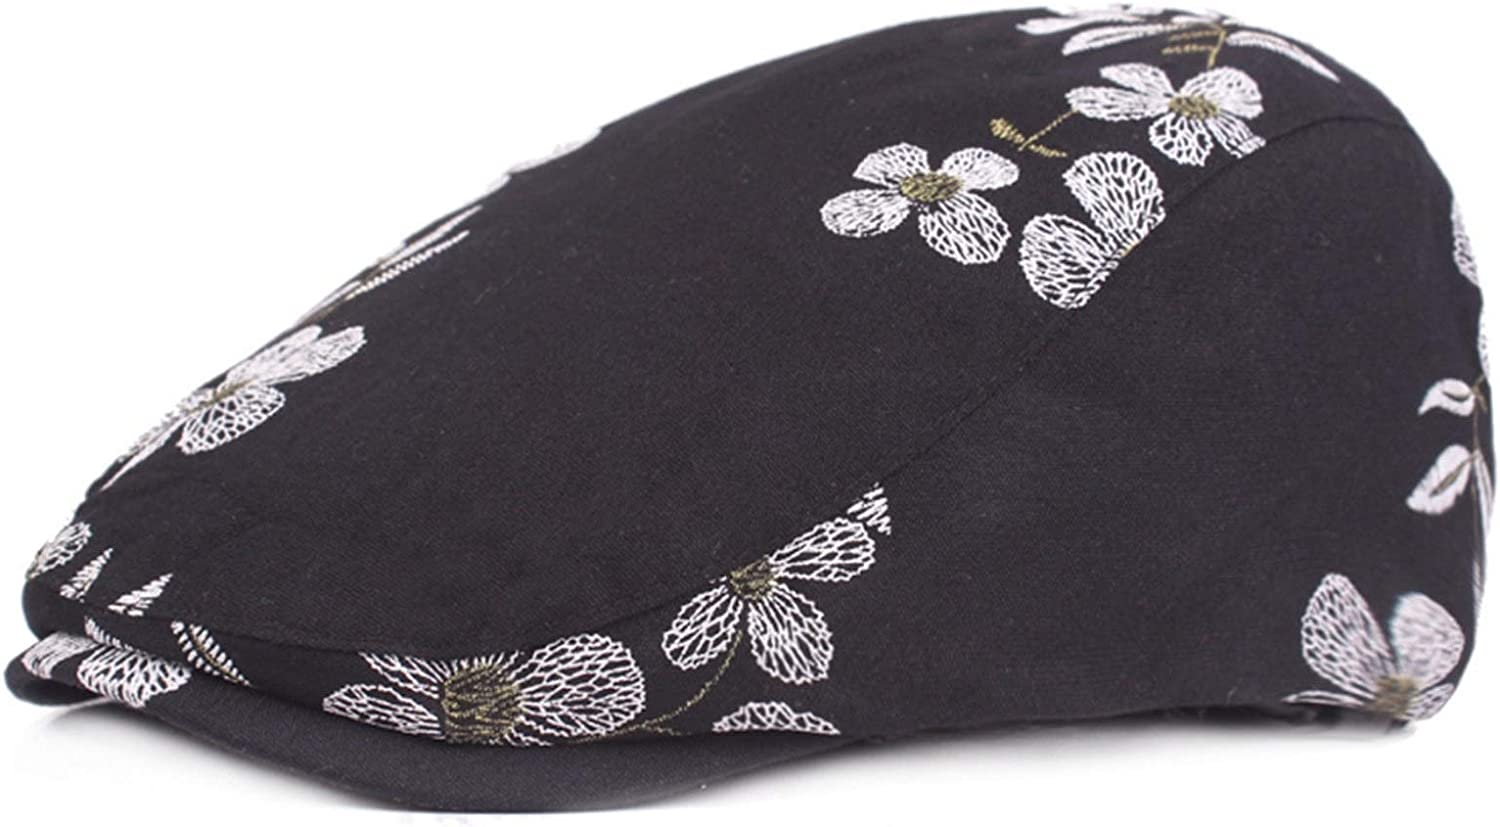 JUNMIN Ladies Chinese Style Cotton Beret Women's Embroidered Flower Travel Cap (Color : Black)